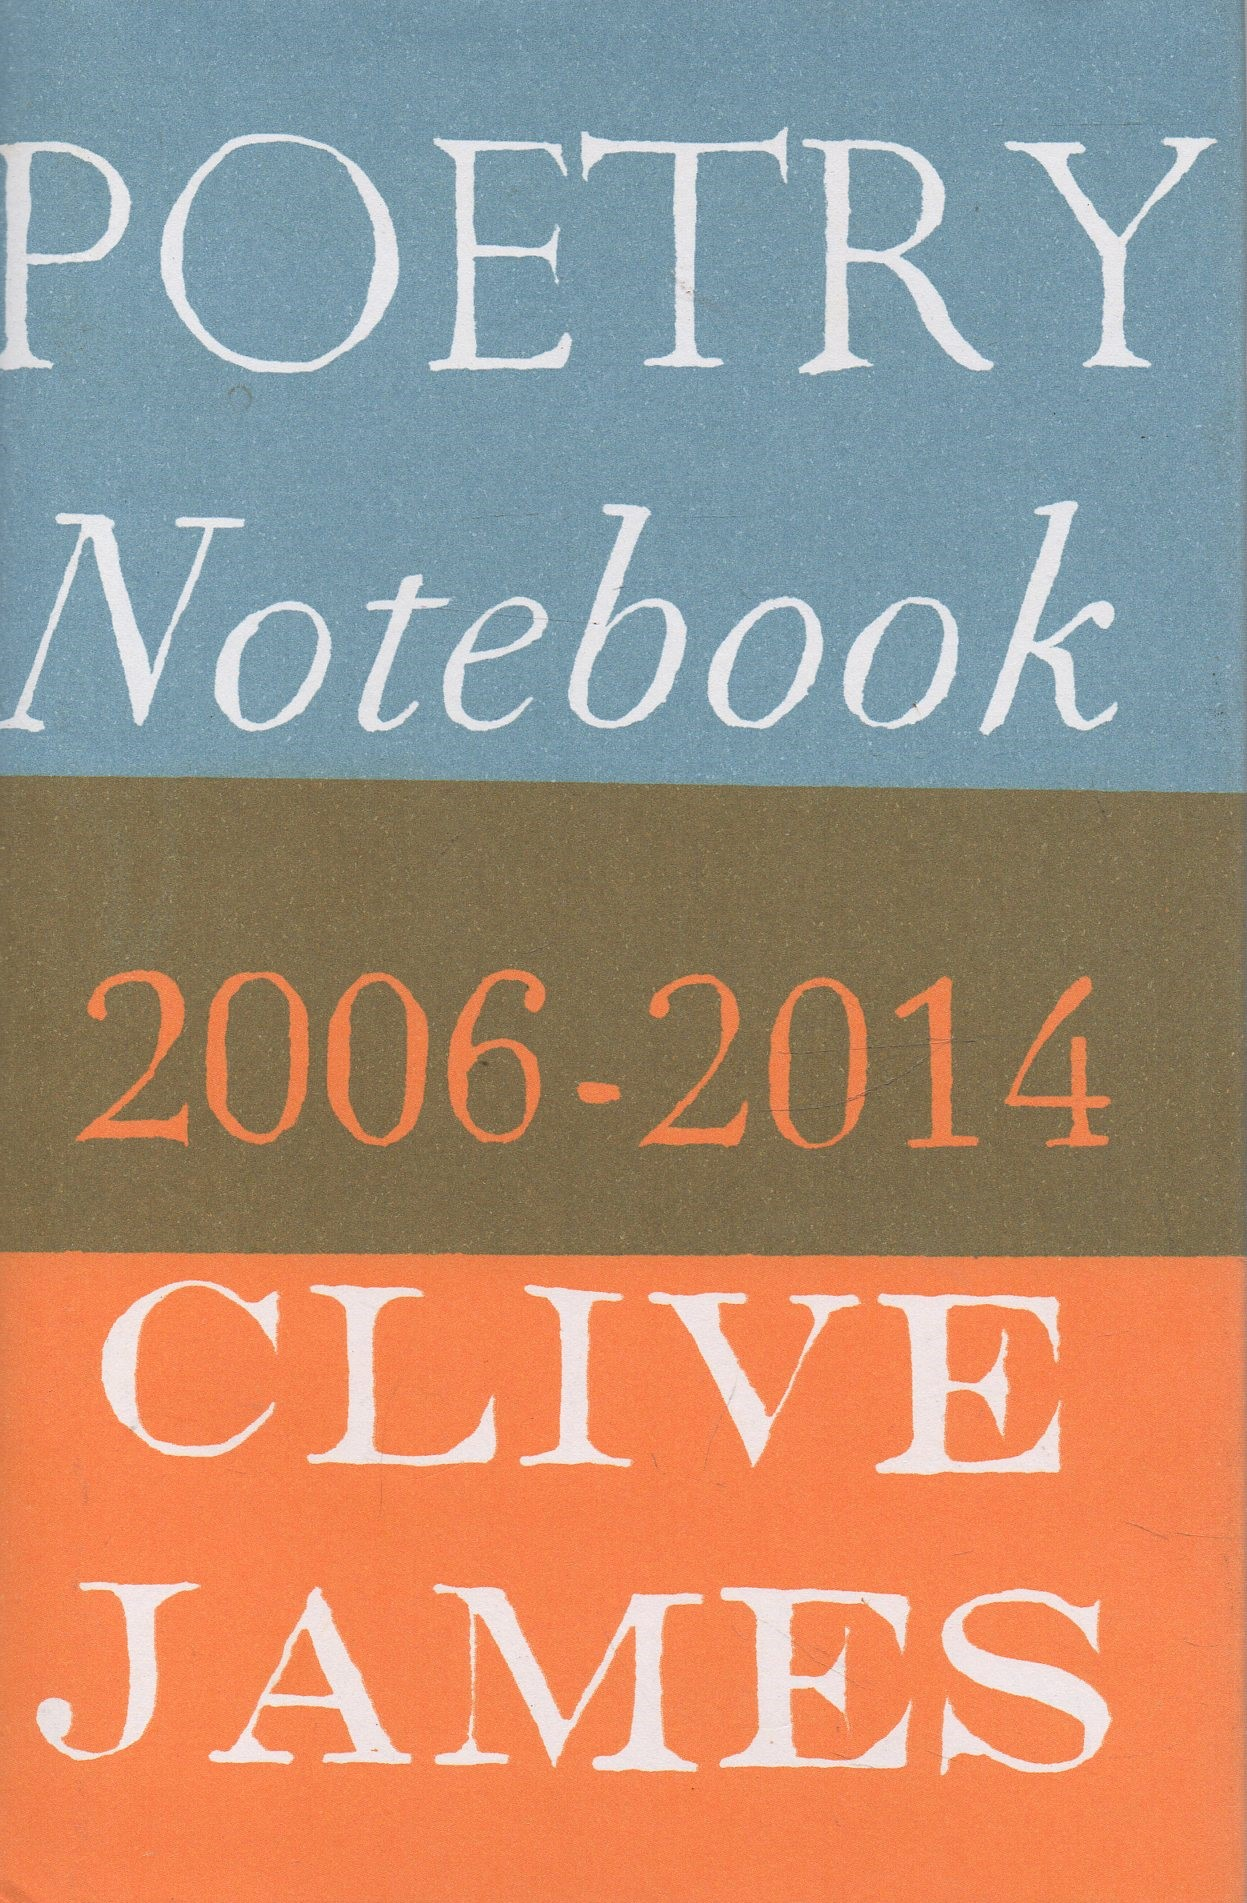 JAMES, CLIVE - Poetry Notebook: 2006-2014